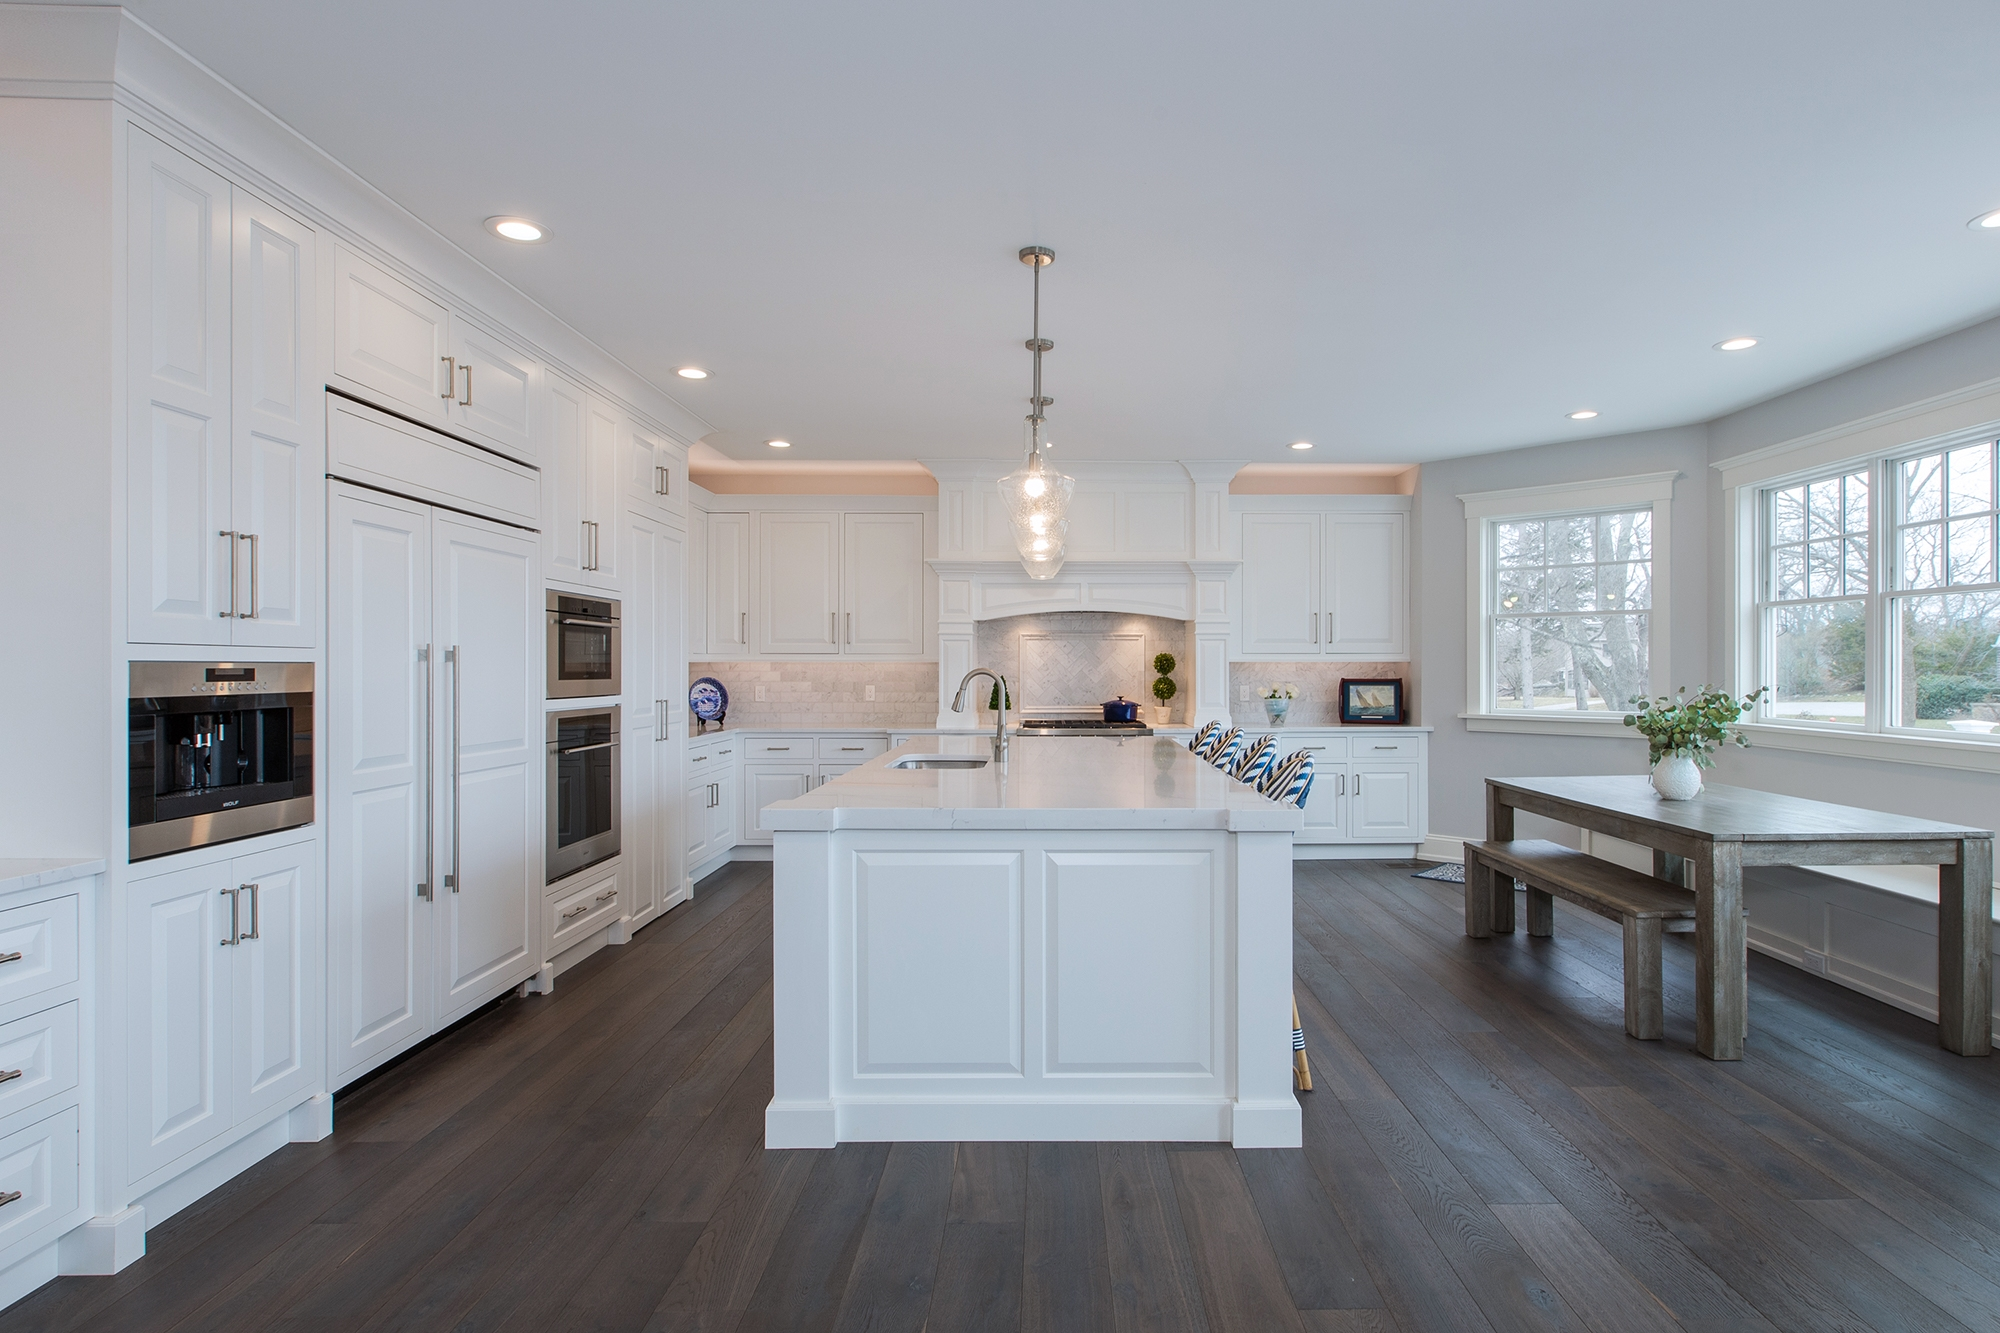 Painted Kitchen Cabinets in White by Showplace Cabinetry - View 15